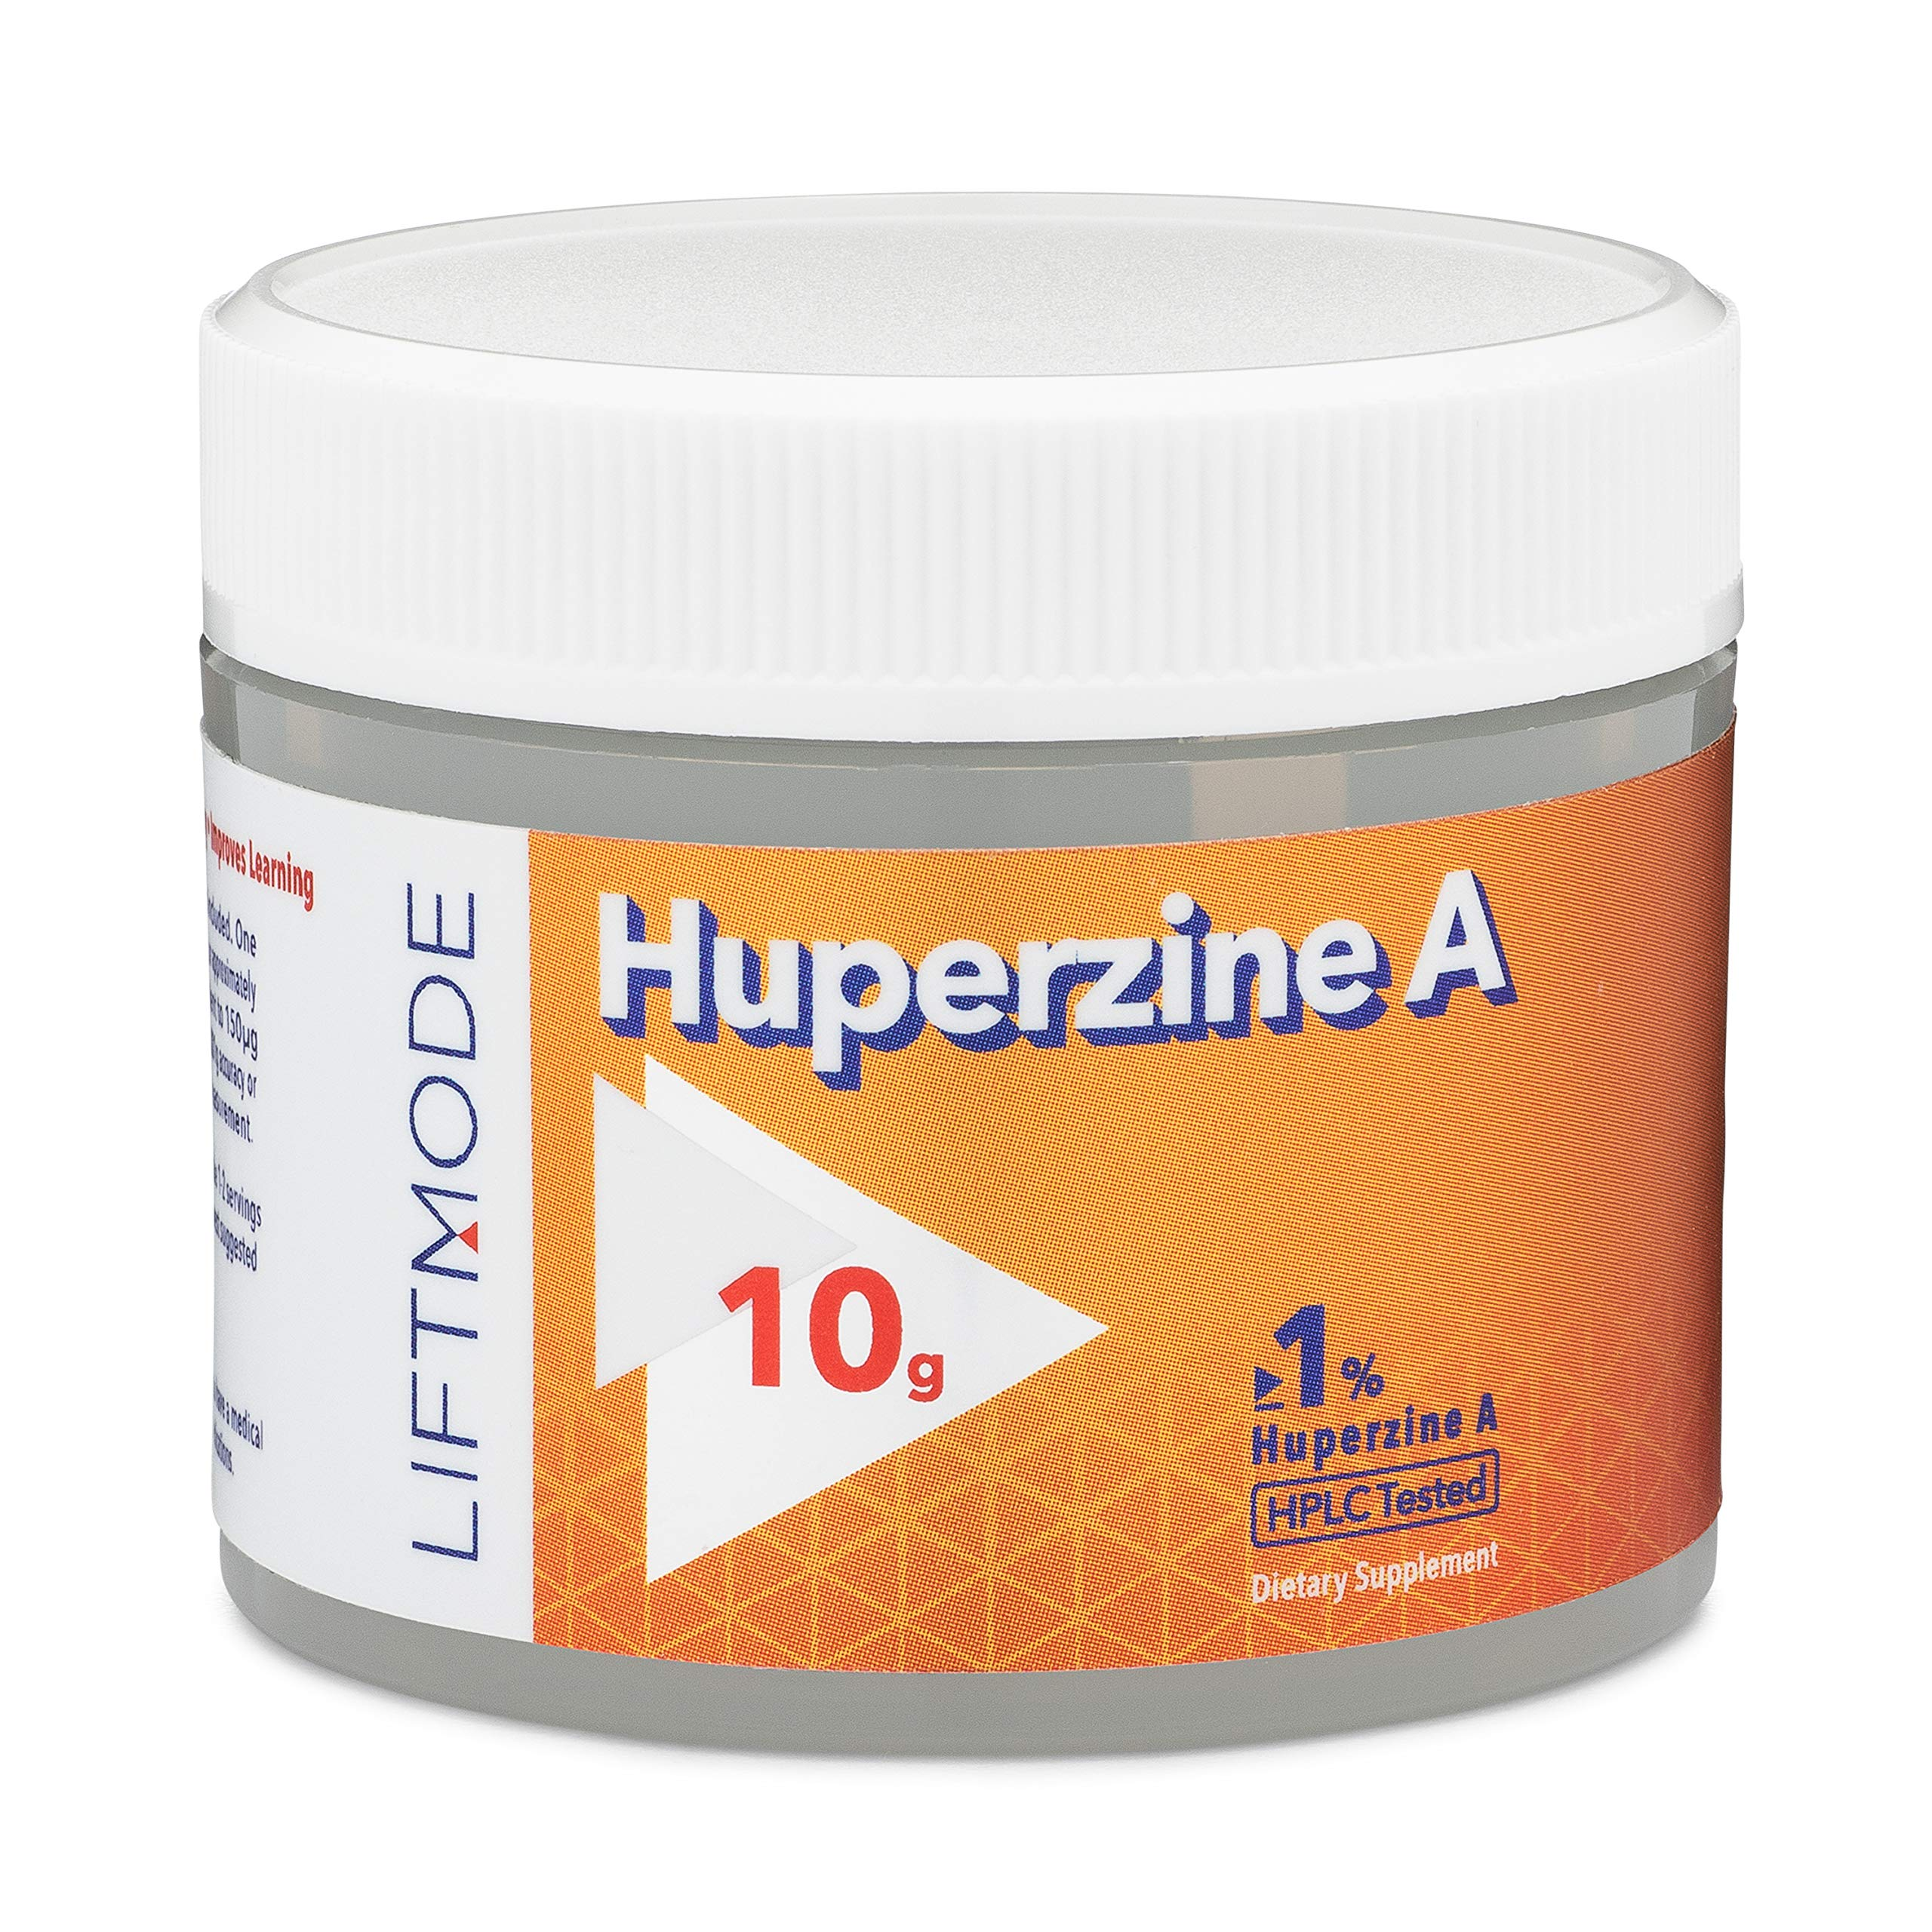 LiftMode Huperzine A Powder Supplement - Supports Focus & Cognition, Enhances Memory & Learning Ability, Huperzia Serrata Extract | Vegetarian, Vegan, Non-GMO, Gluten Free - 10 Grams (500 Servings) by LiftMode